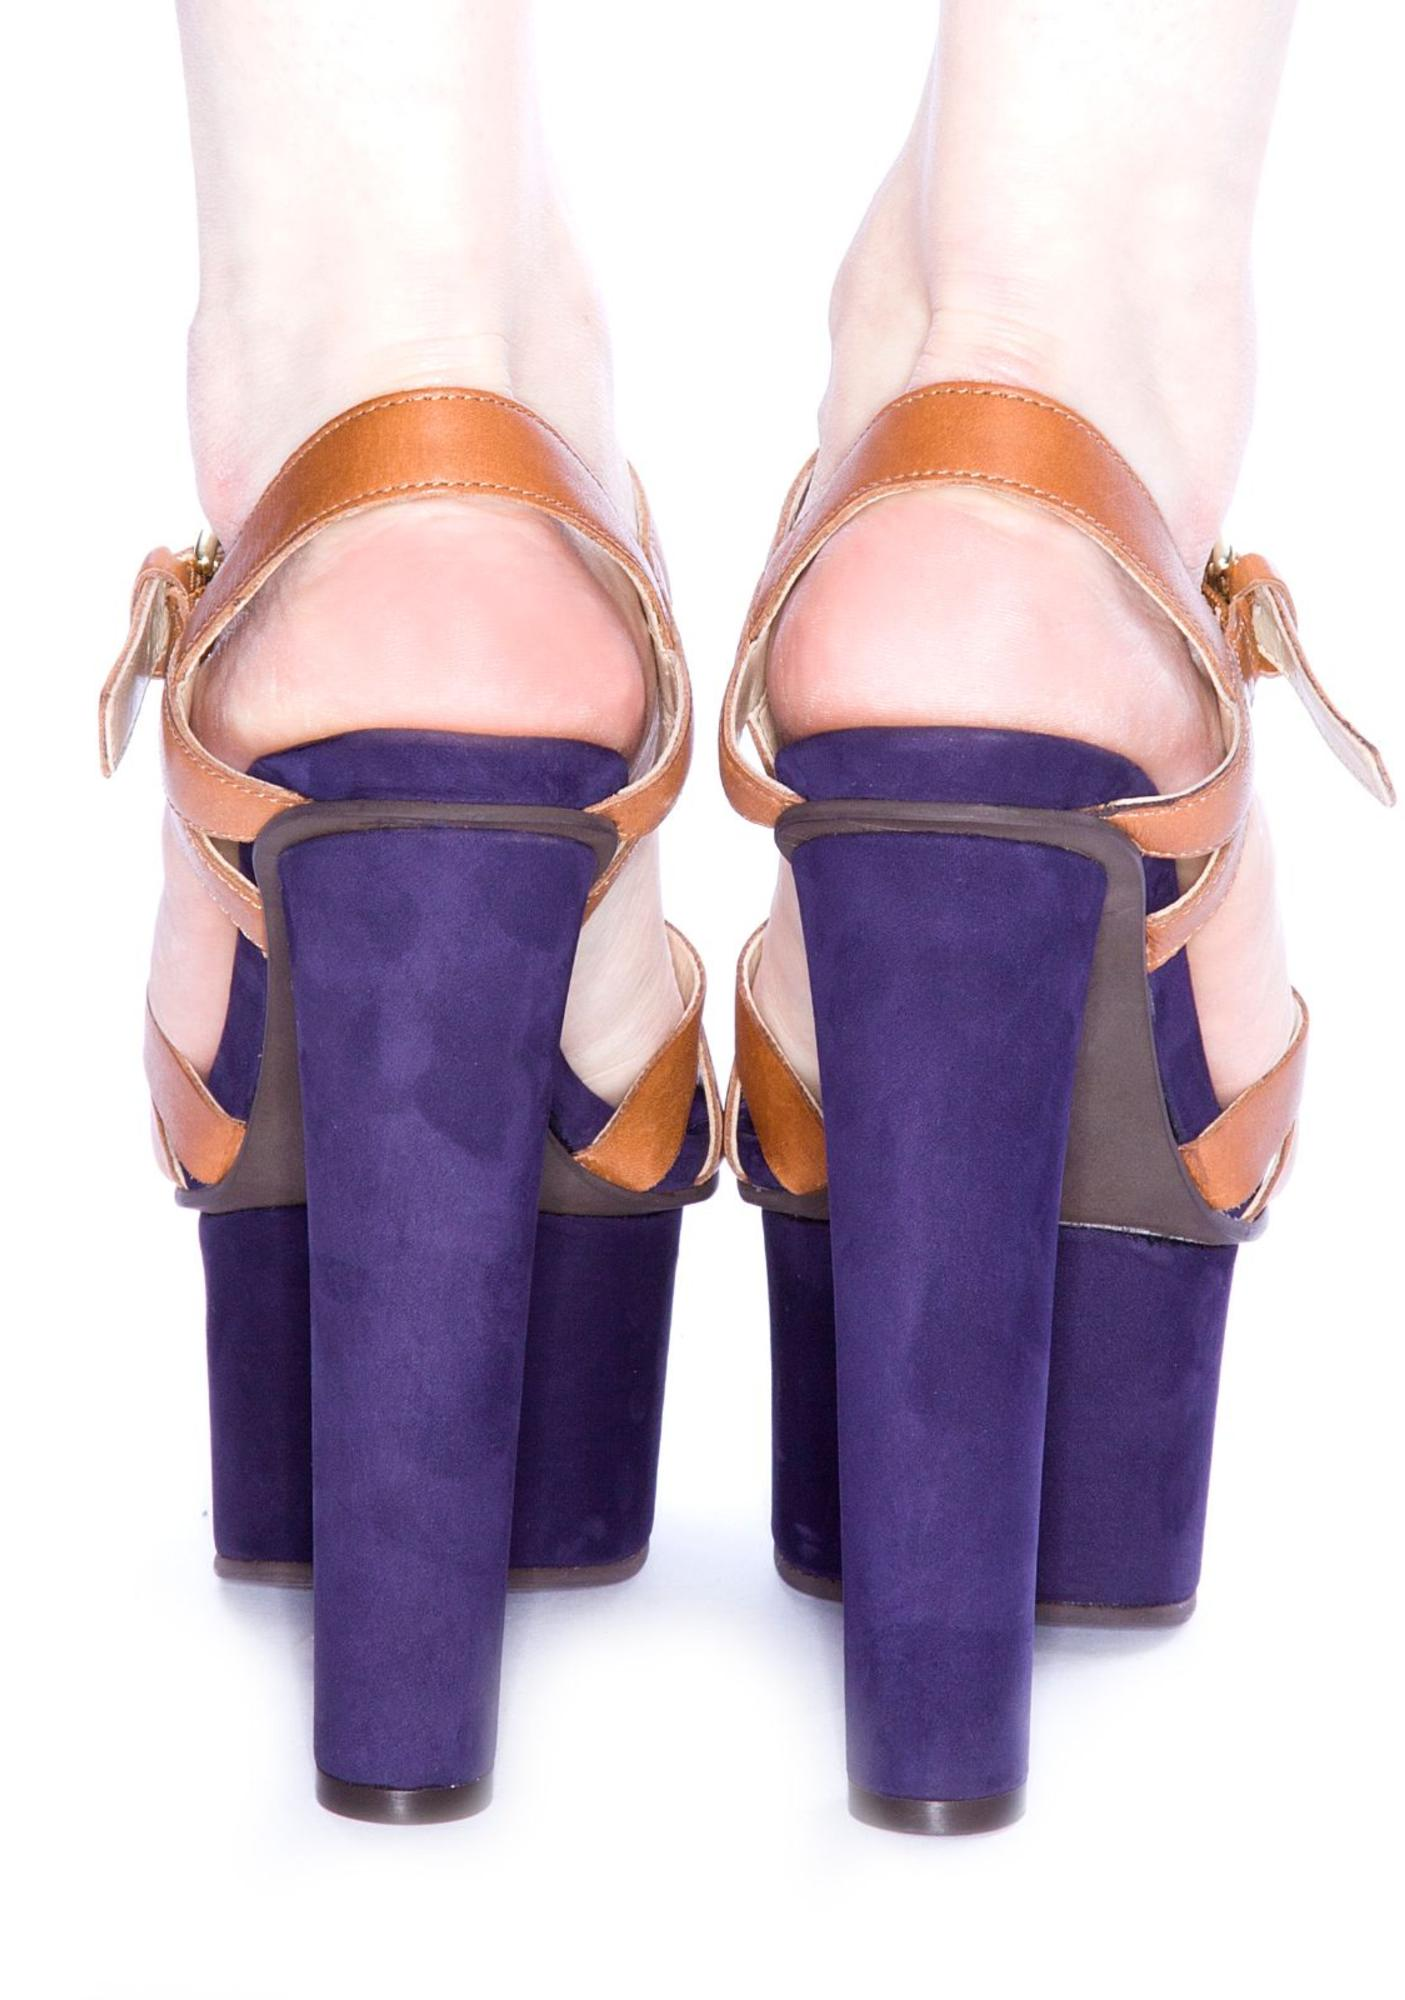 The Shooop Cognac Purple and Brown Platform